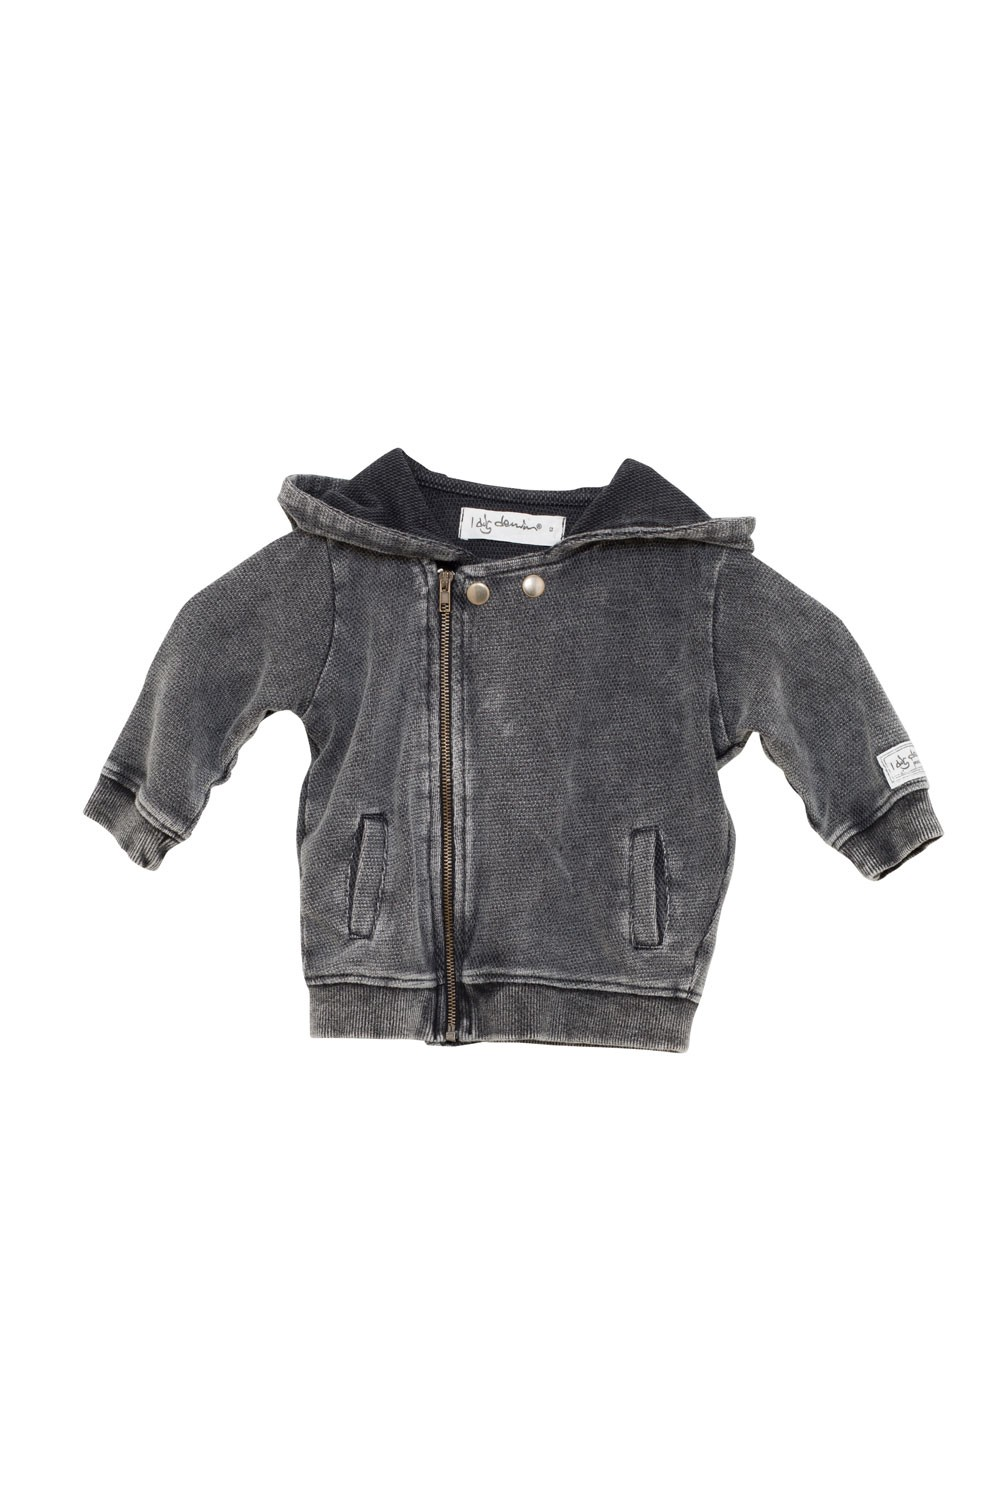 I-Dig-Denim-Egon-jacket-Dark-Grey-7333119004540-config-www.kidsdepartment.nl-31.jpg